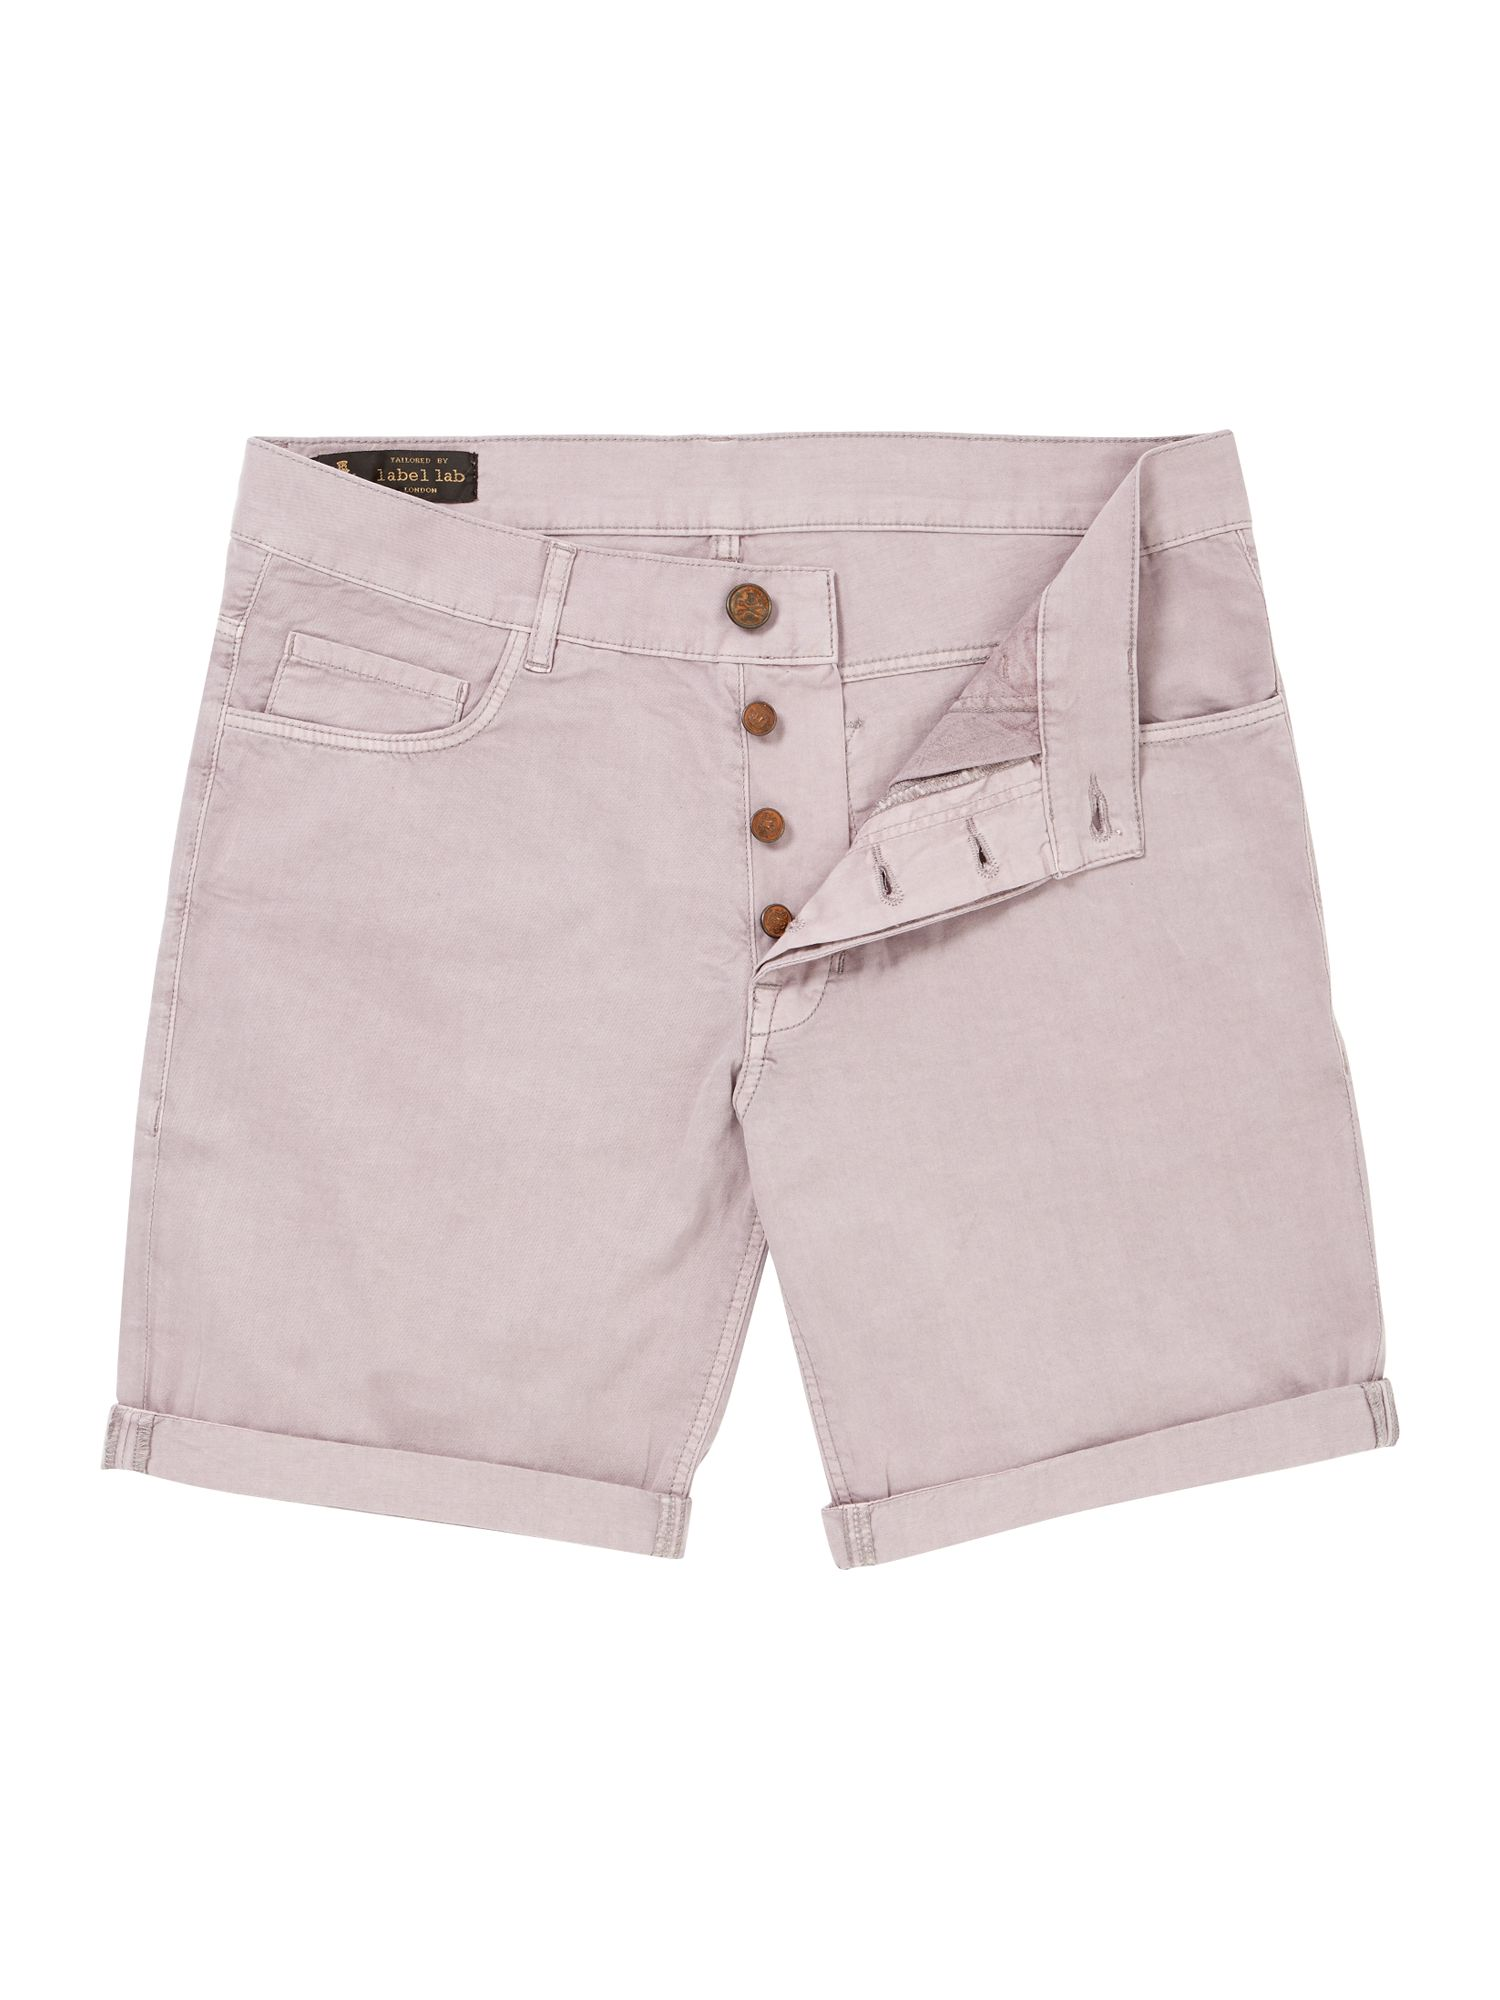 Finch 5 pocket short